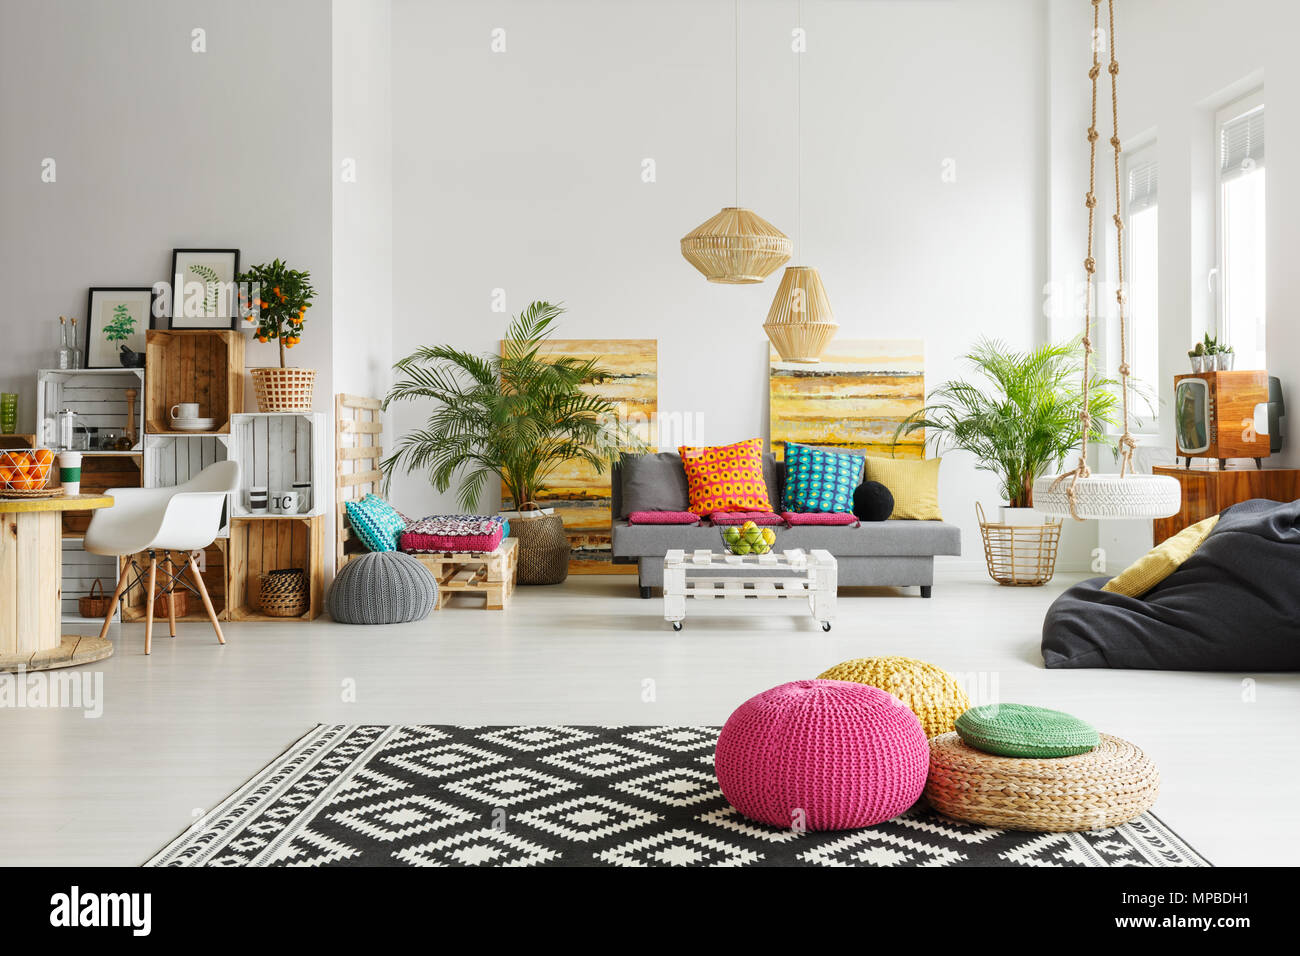 Loft Living Room With Colorful Poufs, Sofa, Carpet, Crate Furniture